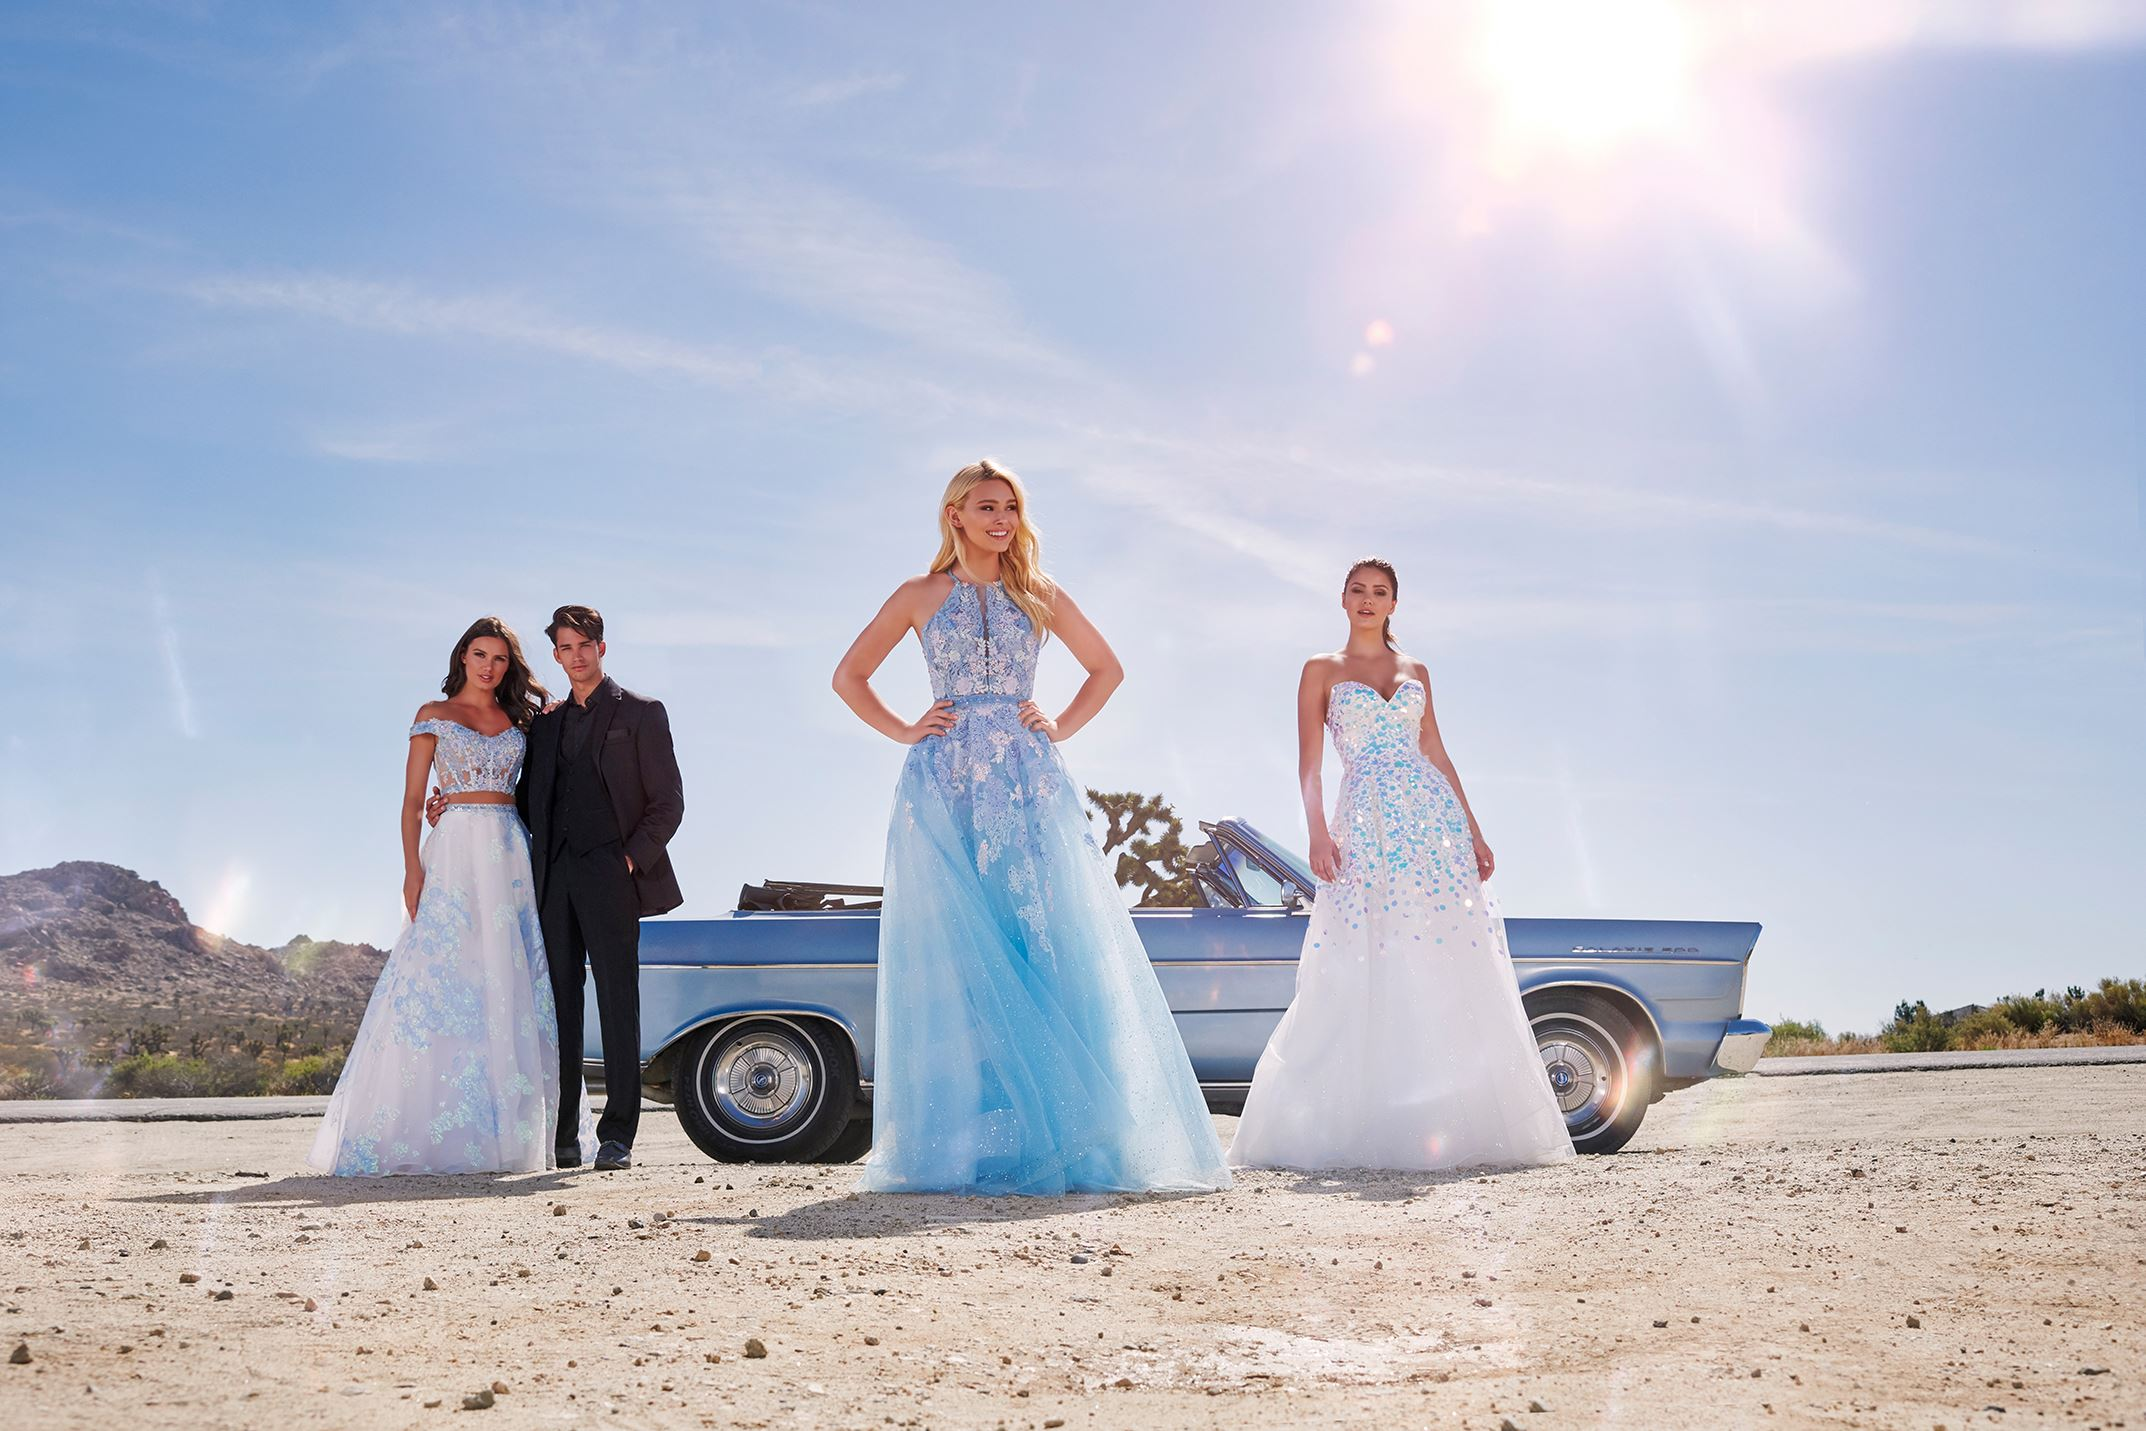 Models in Ellie Wilde dresses in front of a car in the desert